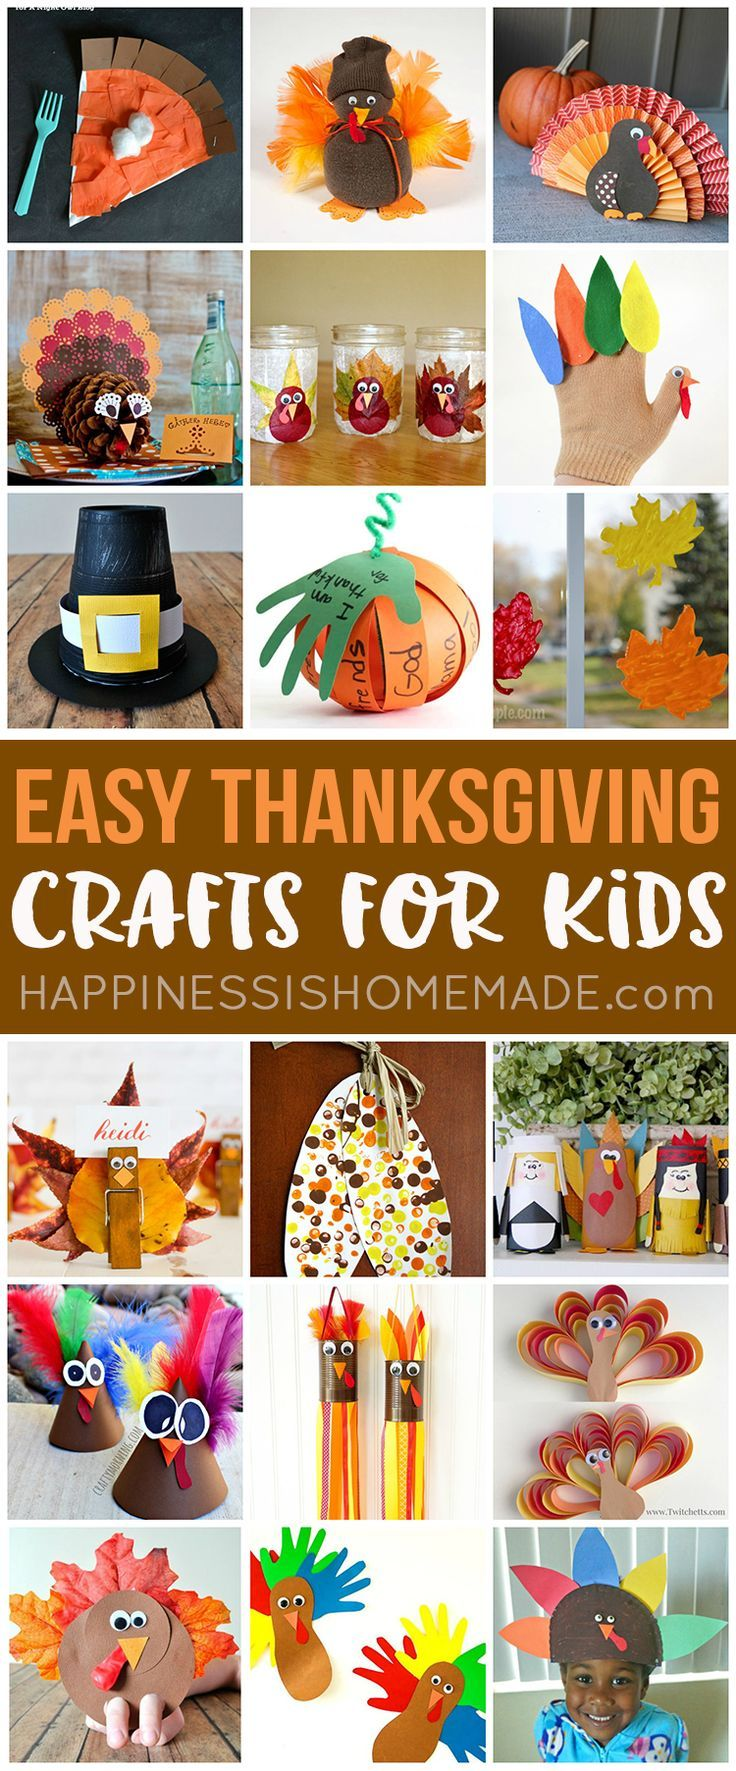 These quick and easy Thanksgiving crafts for kids can be made in under 30  minutes using items that you probably already have around the house!